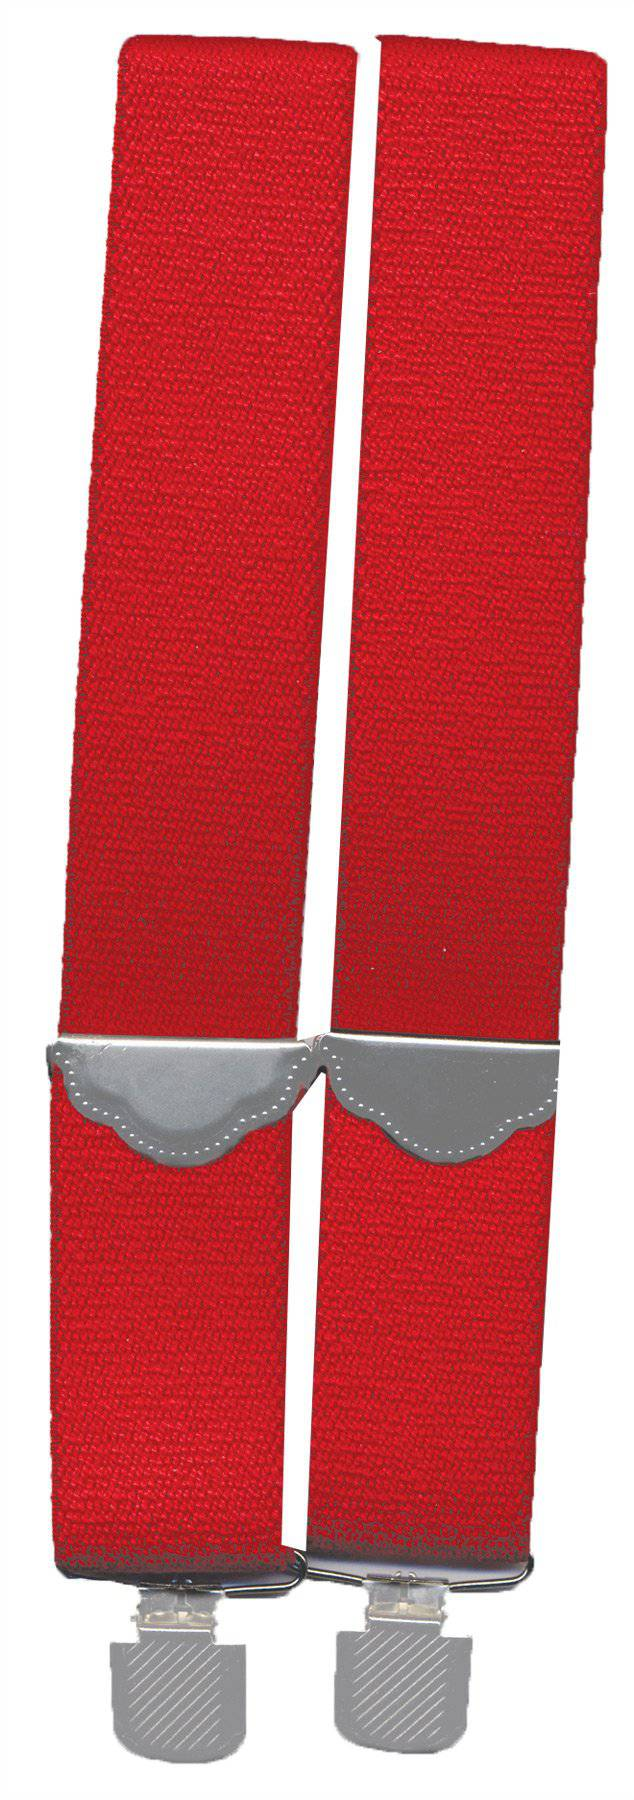 Joeanne Company International Men's 1890s Suspenders Classic Accessory - Costume Arena